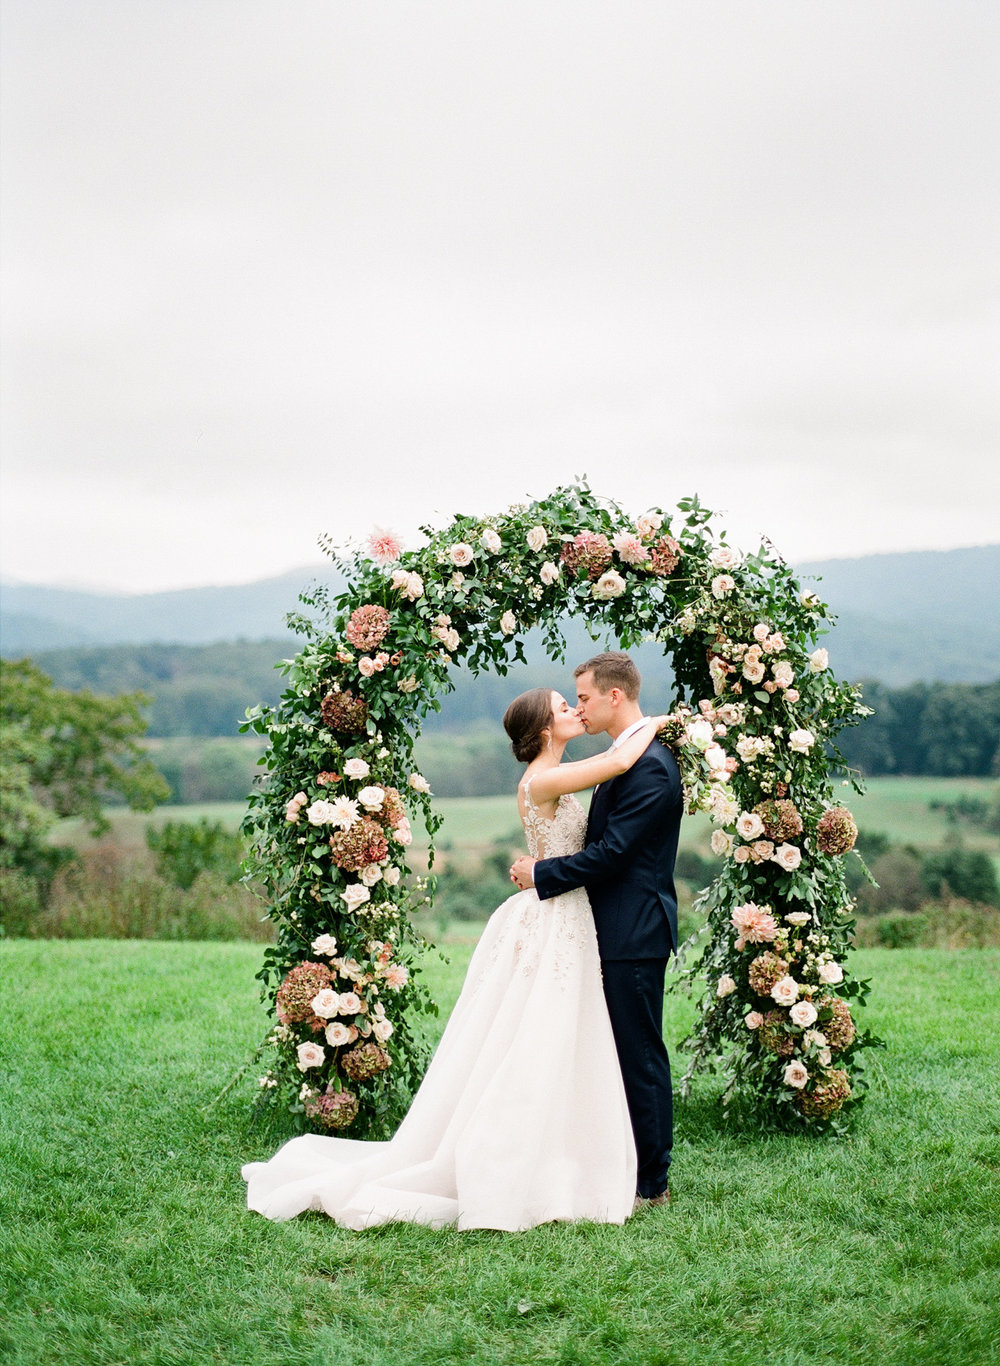 Pippin-Hill-Farm-and-Vinyards-Wedding-Film-Photography-34.jpg